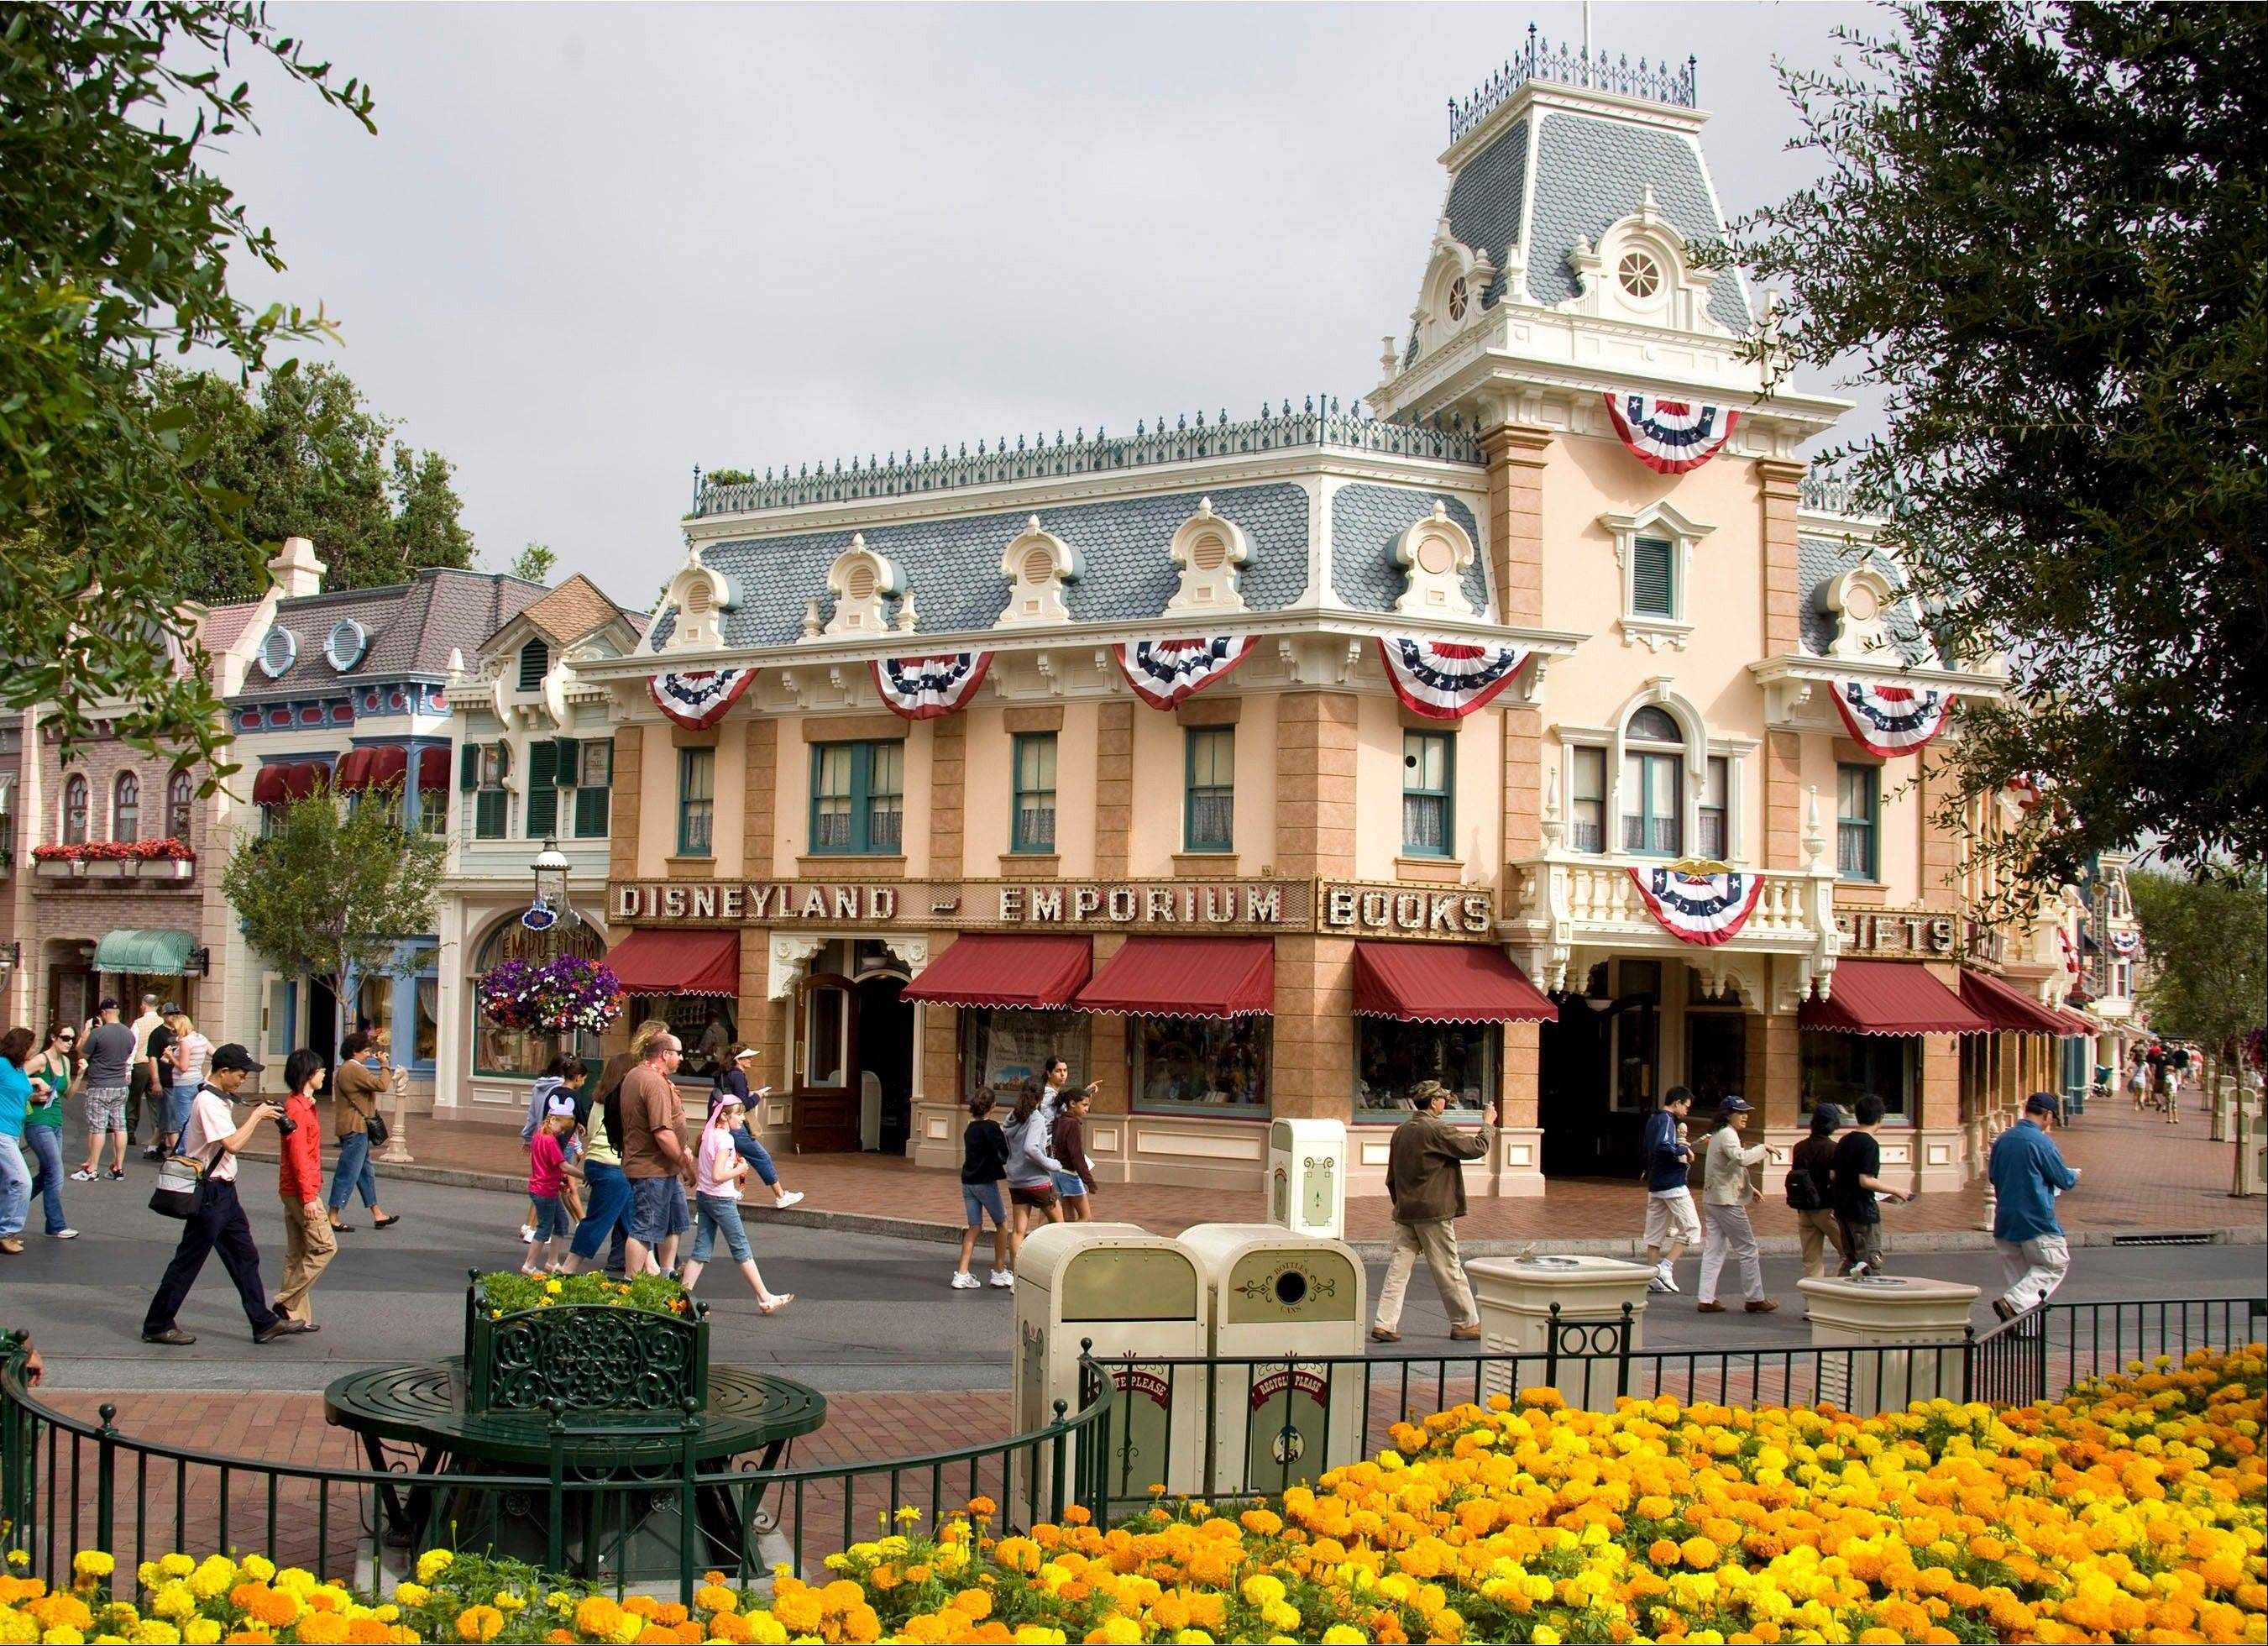 Guests walk along Main Street U.S.A. at the Disneyland theme park.